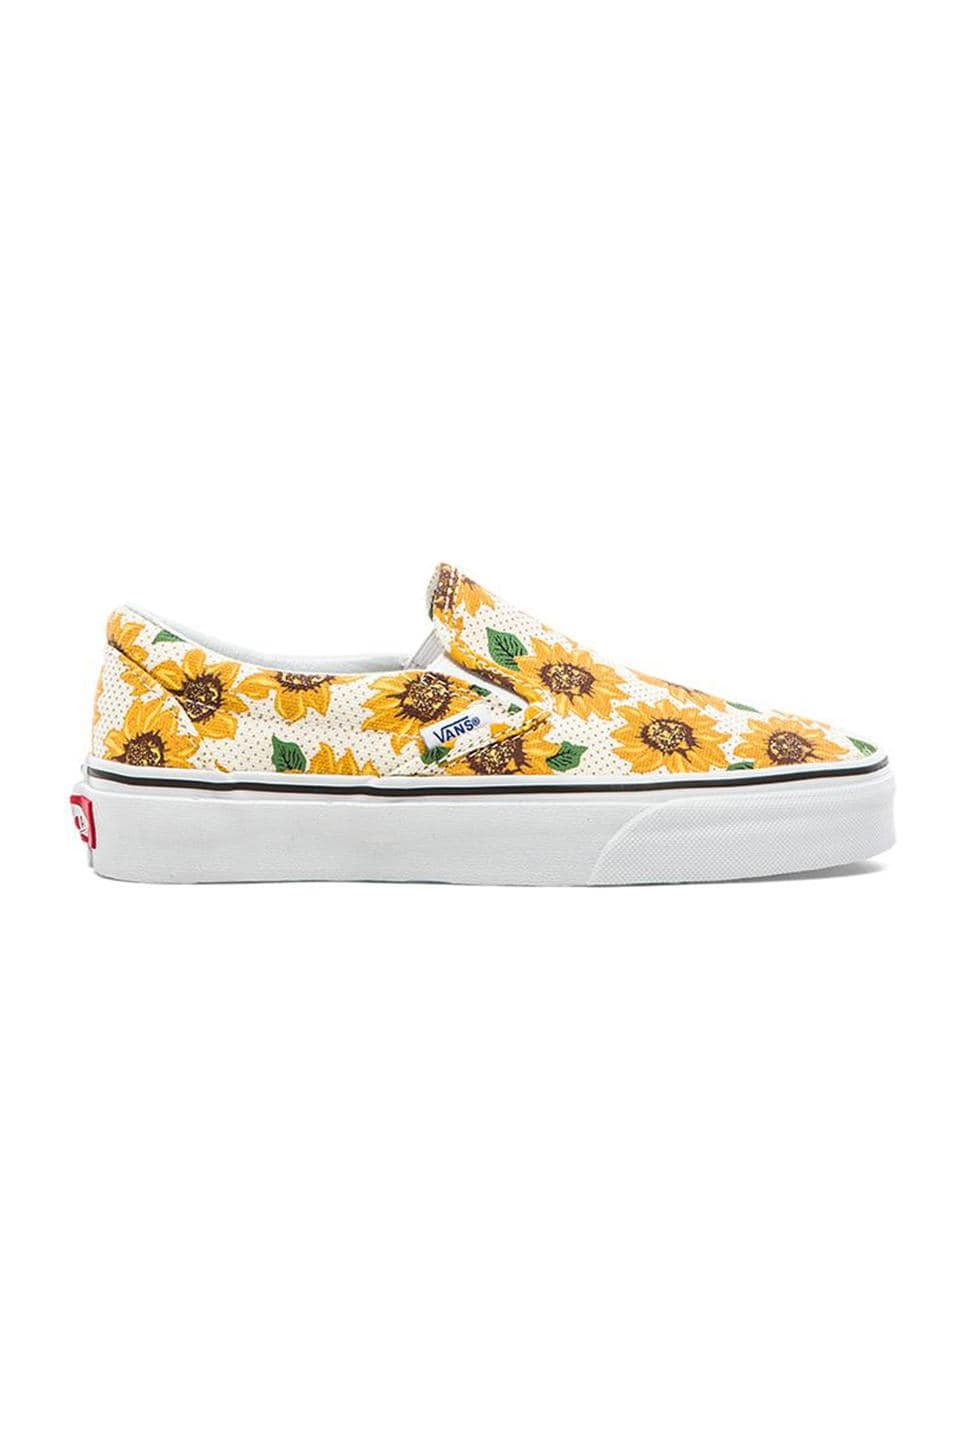 Vans Classic Sunflower Slip On in True White